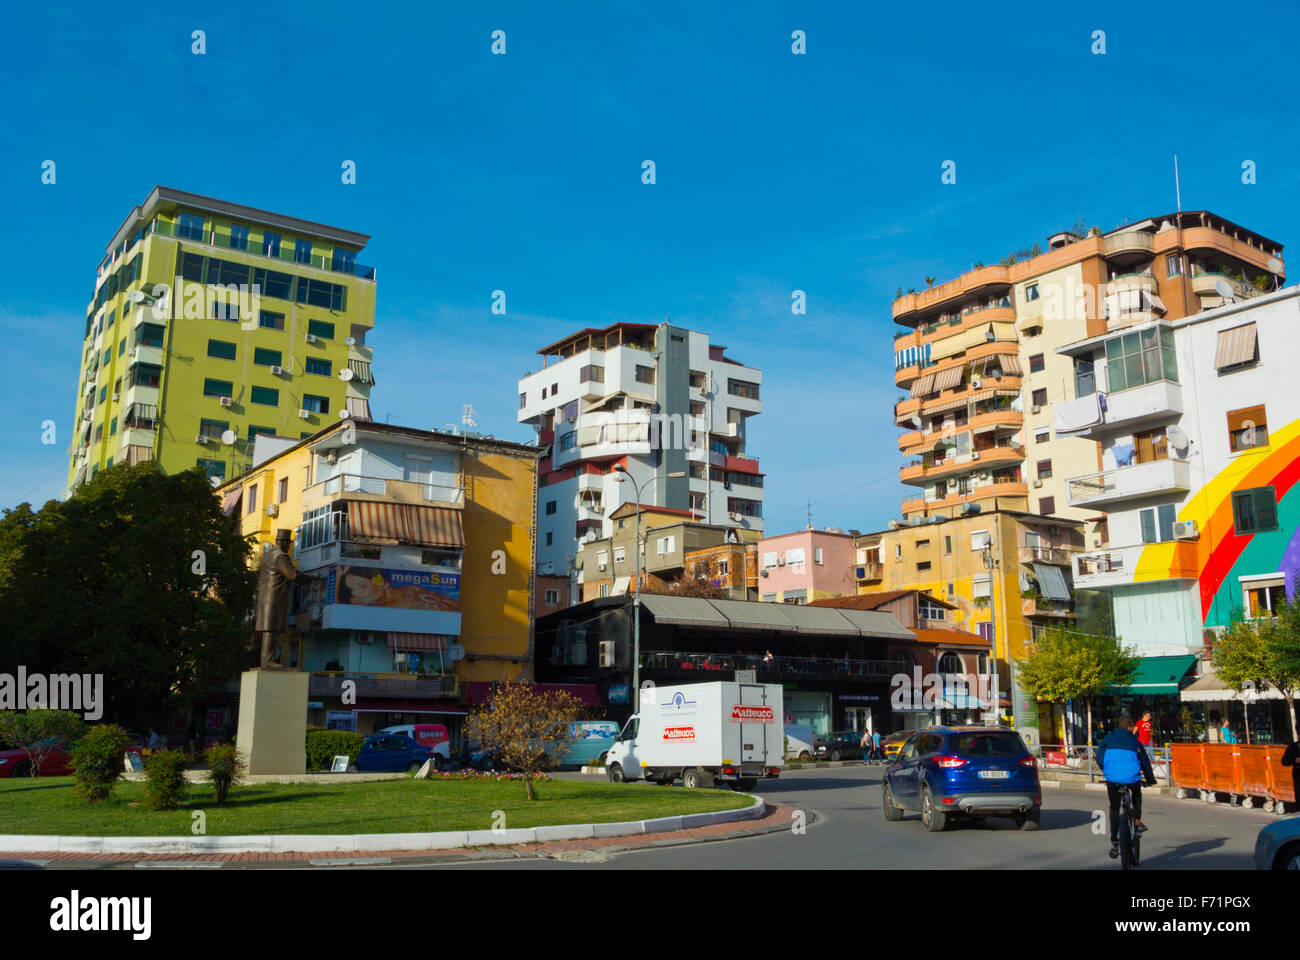 Sheshi Uillson, Wilson square, Blloku district, Tirana, Albania - Stock Image